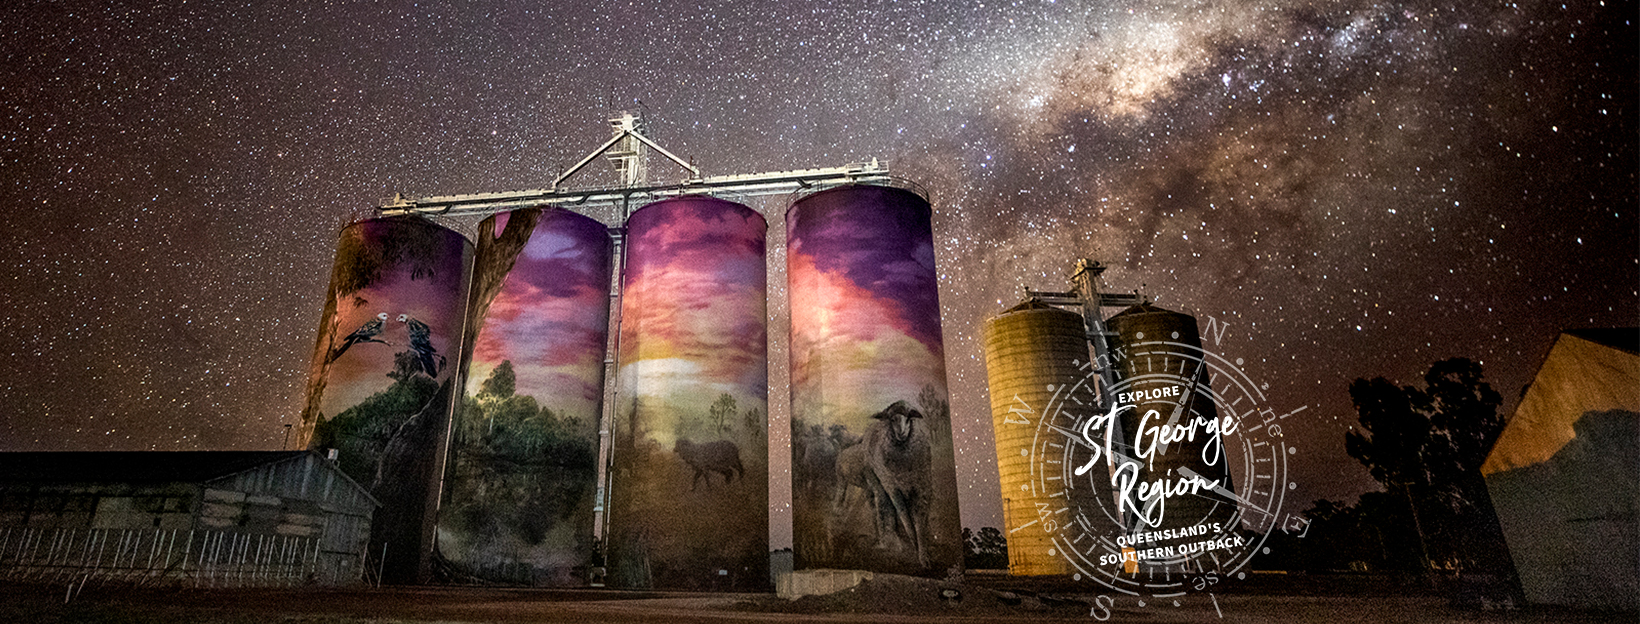 Tall grain silos painted with a mural stand in front of a night sky, blanketed with bright stars.